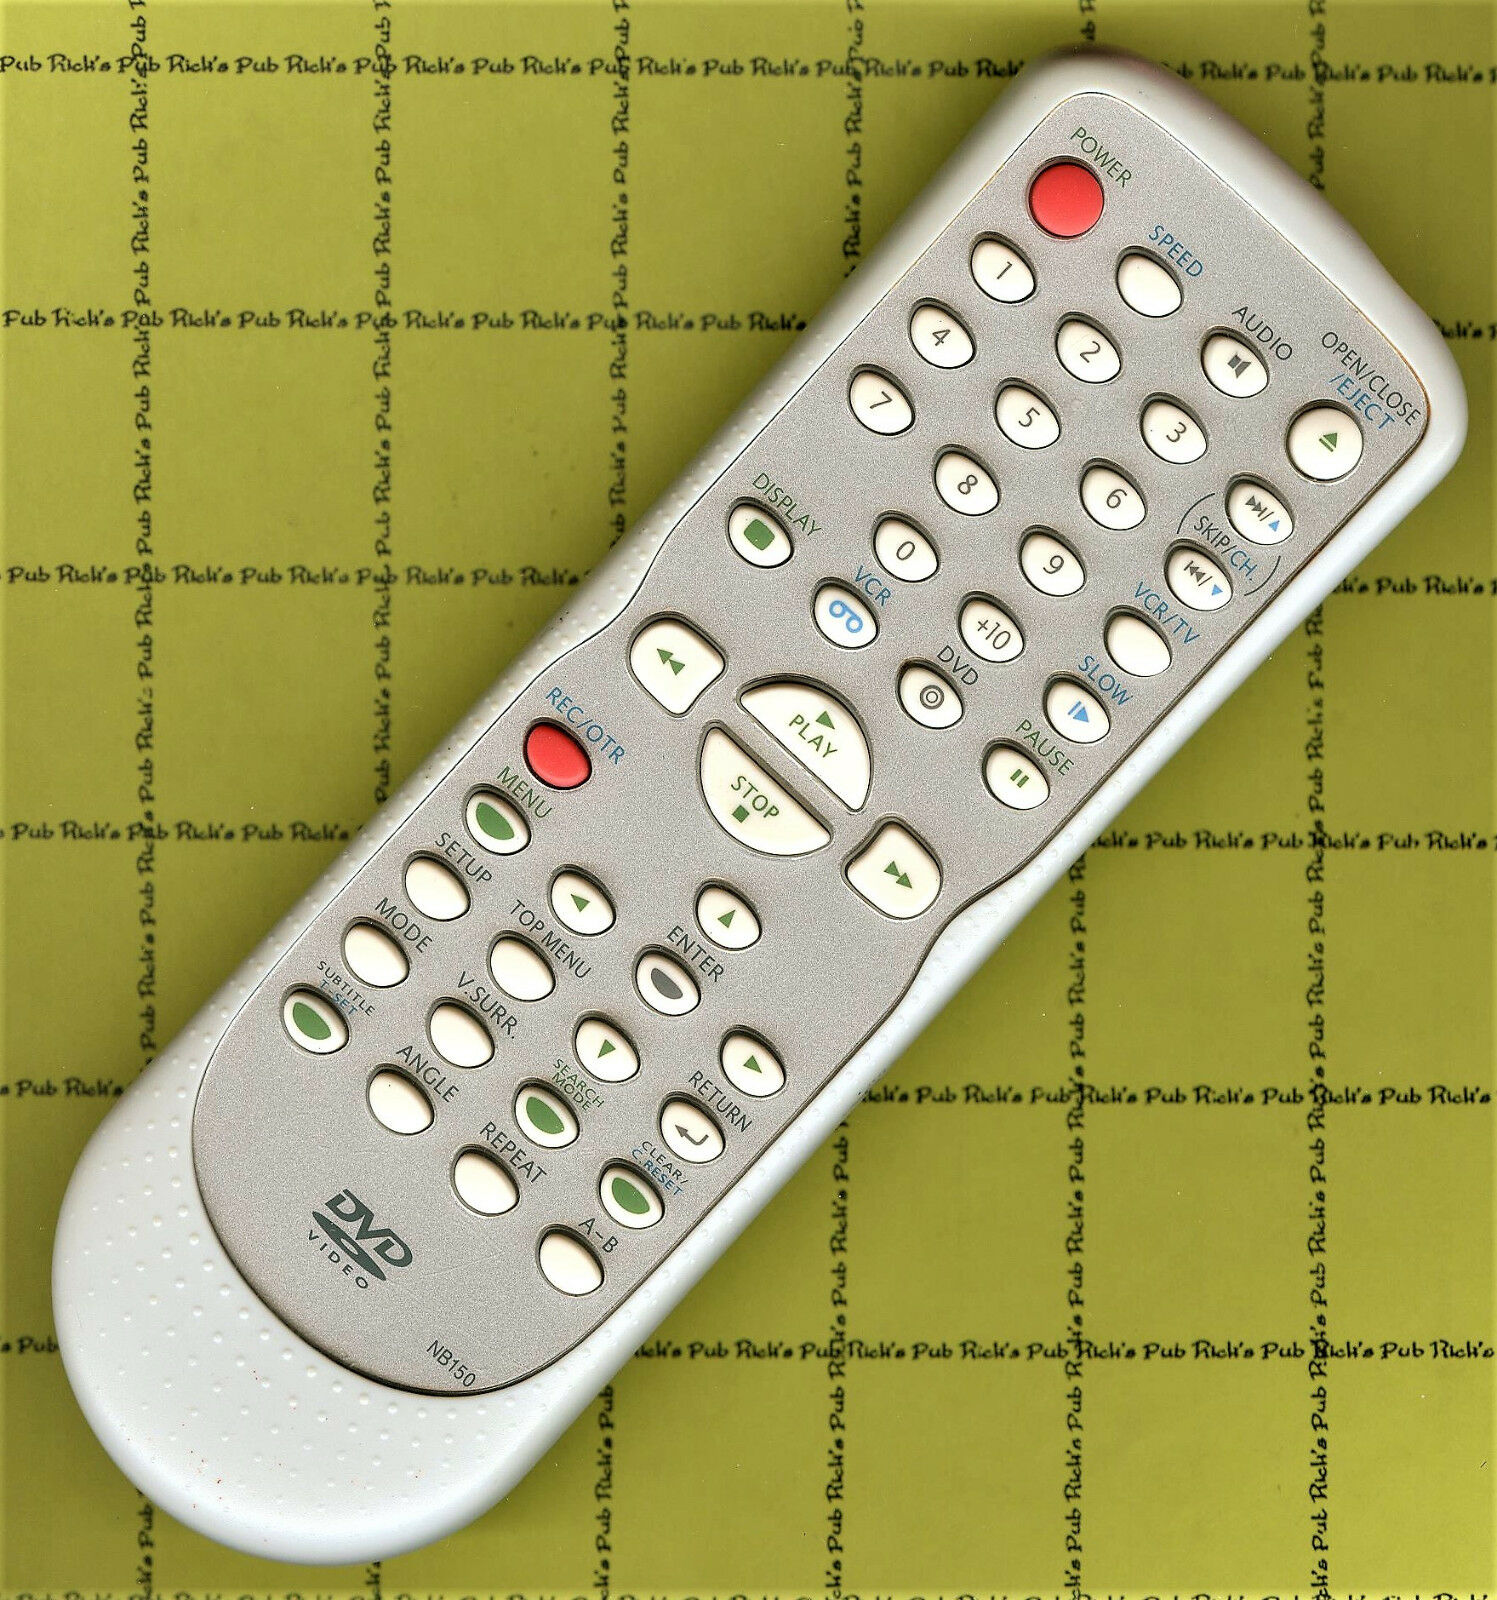 20+ Emerson Tv Remote Manual Codes Pictures and Ideas on Weric